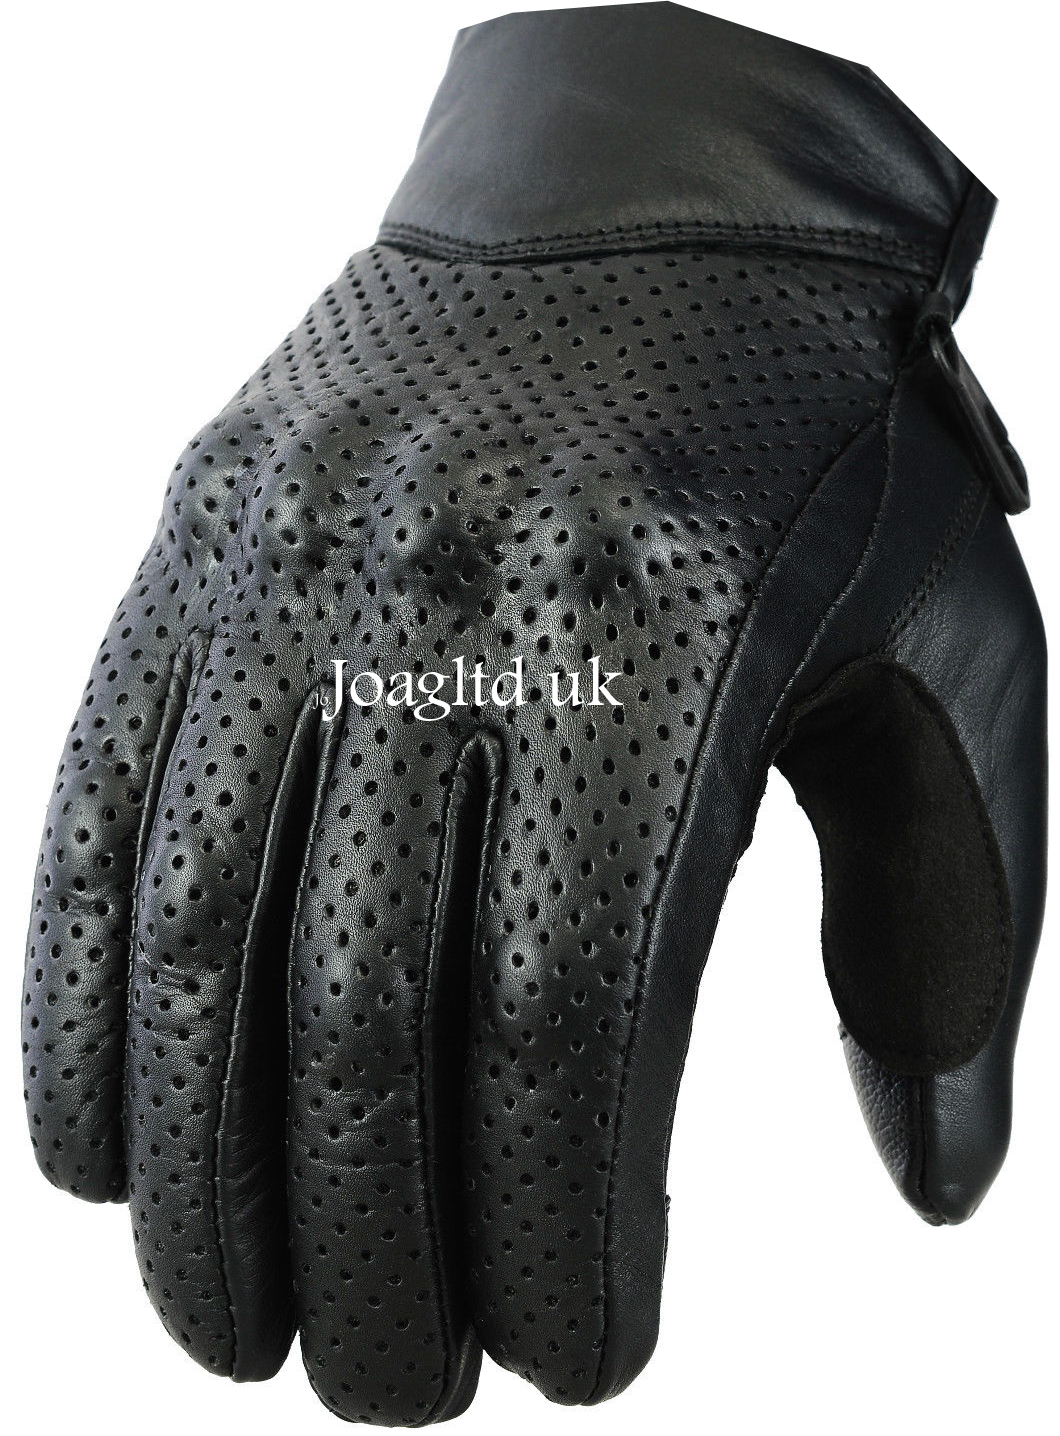 Leather driving gloves on ebay - Leather Motorbike Motorcycle Gloves Knuckle Shell Protection Vented Summer Touch